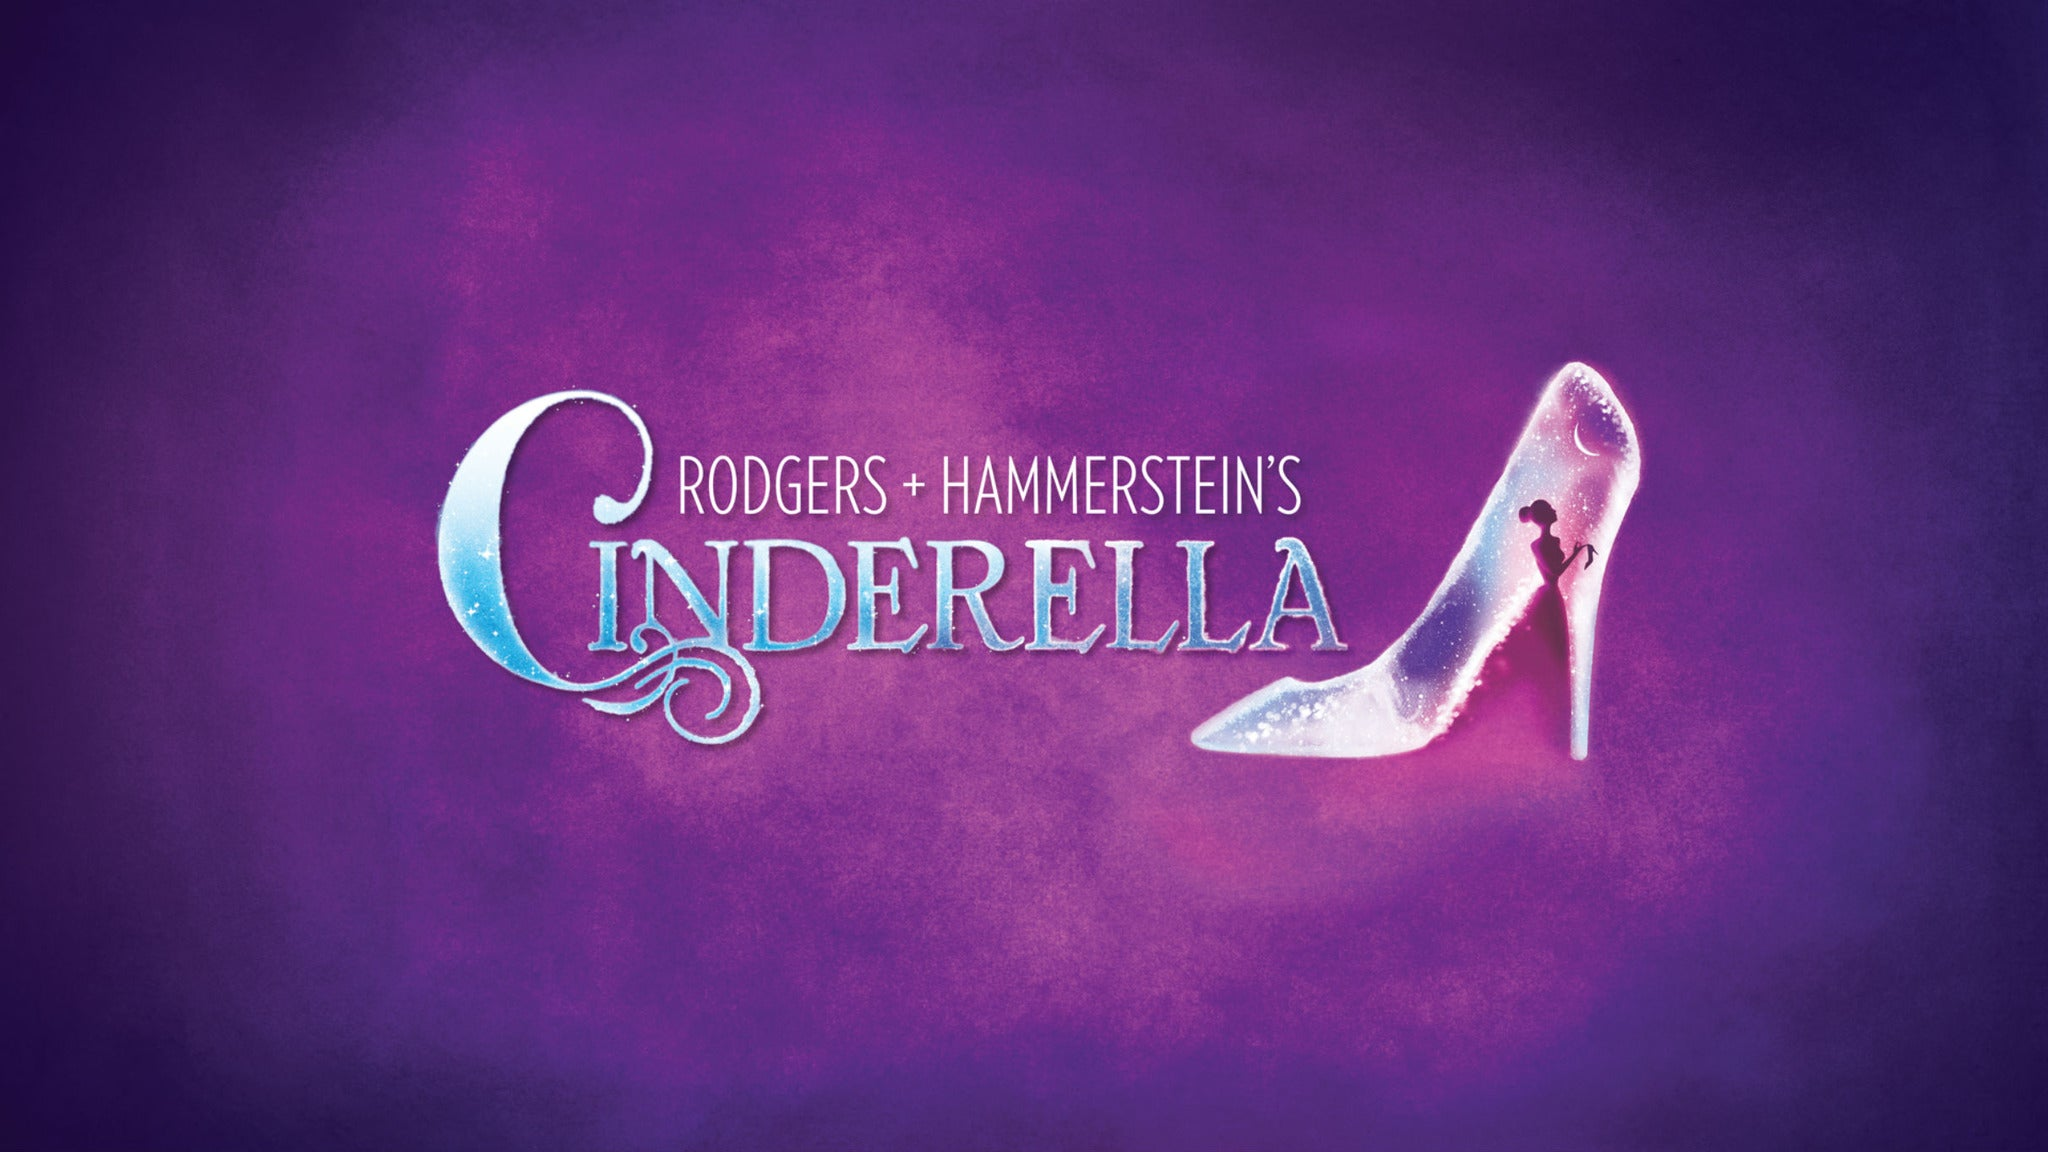 Cinderella-Theater at Paper Mill Playhouse - Millburn, NJ 07041